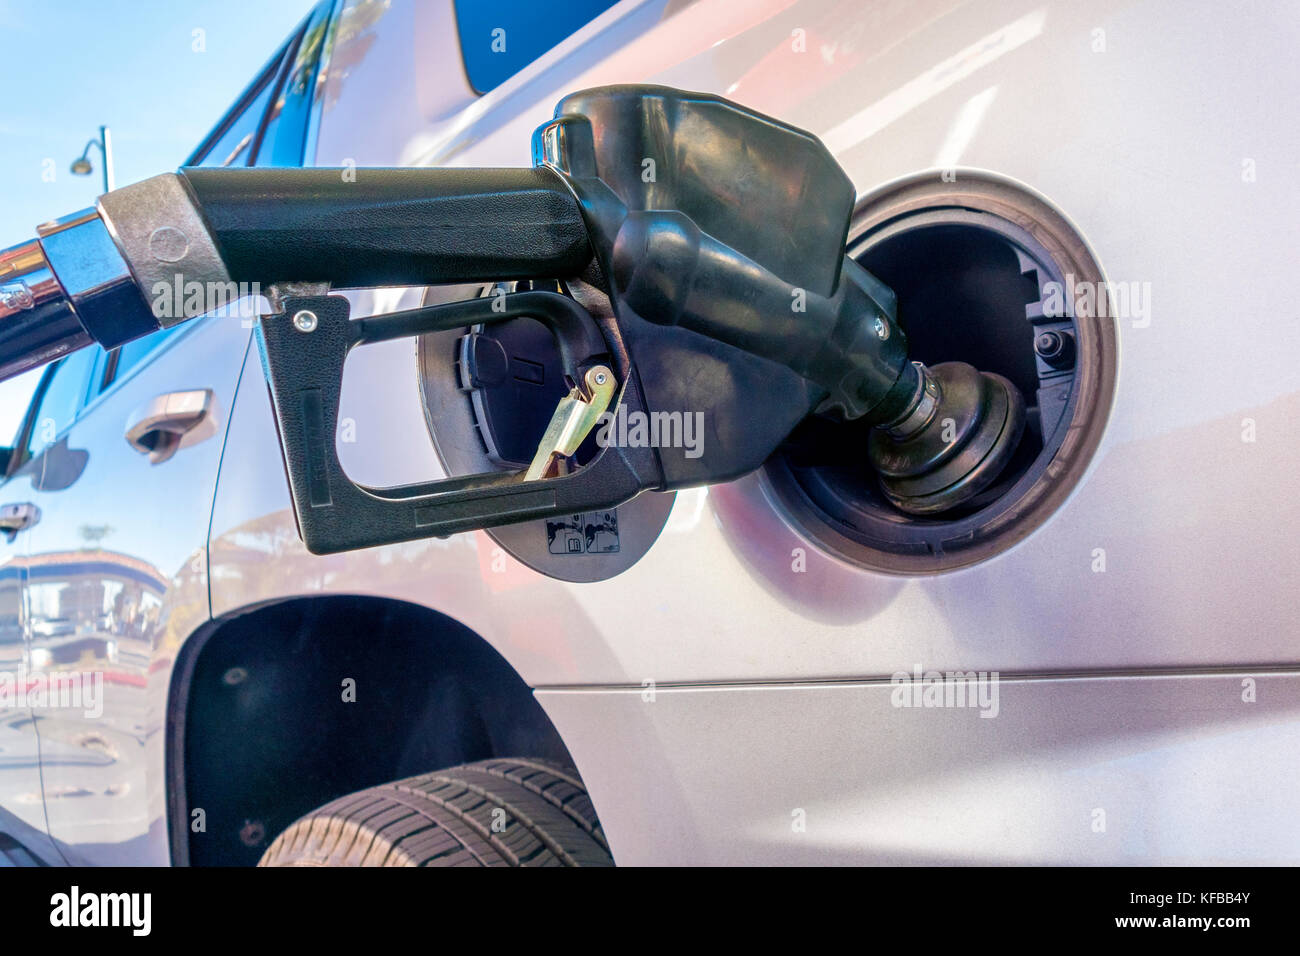 Gas pump nozzle. Petrol pump nozzle with vapor recovery. Fueling a big SUV in the US. - Stock Image